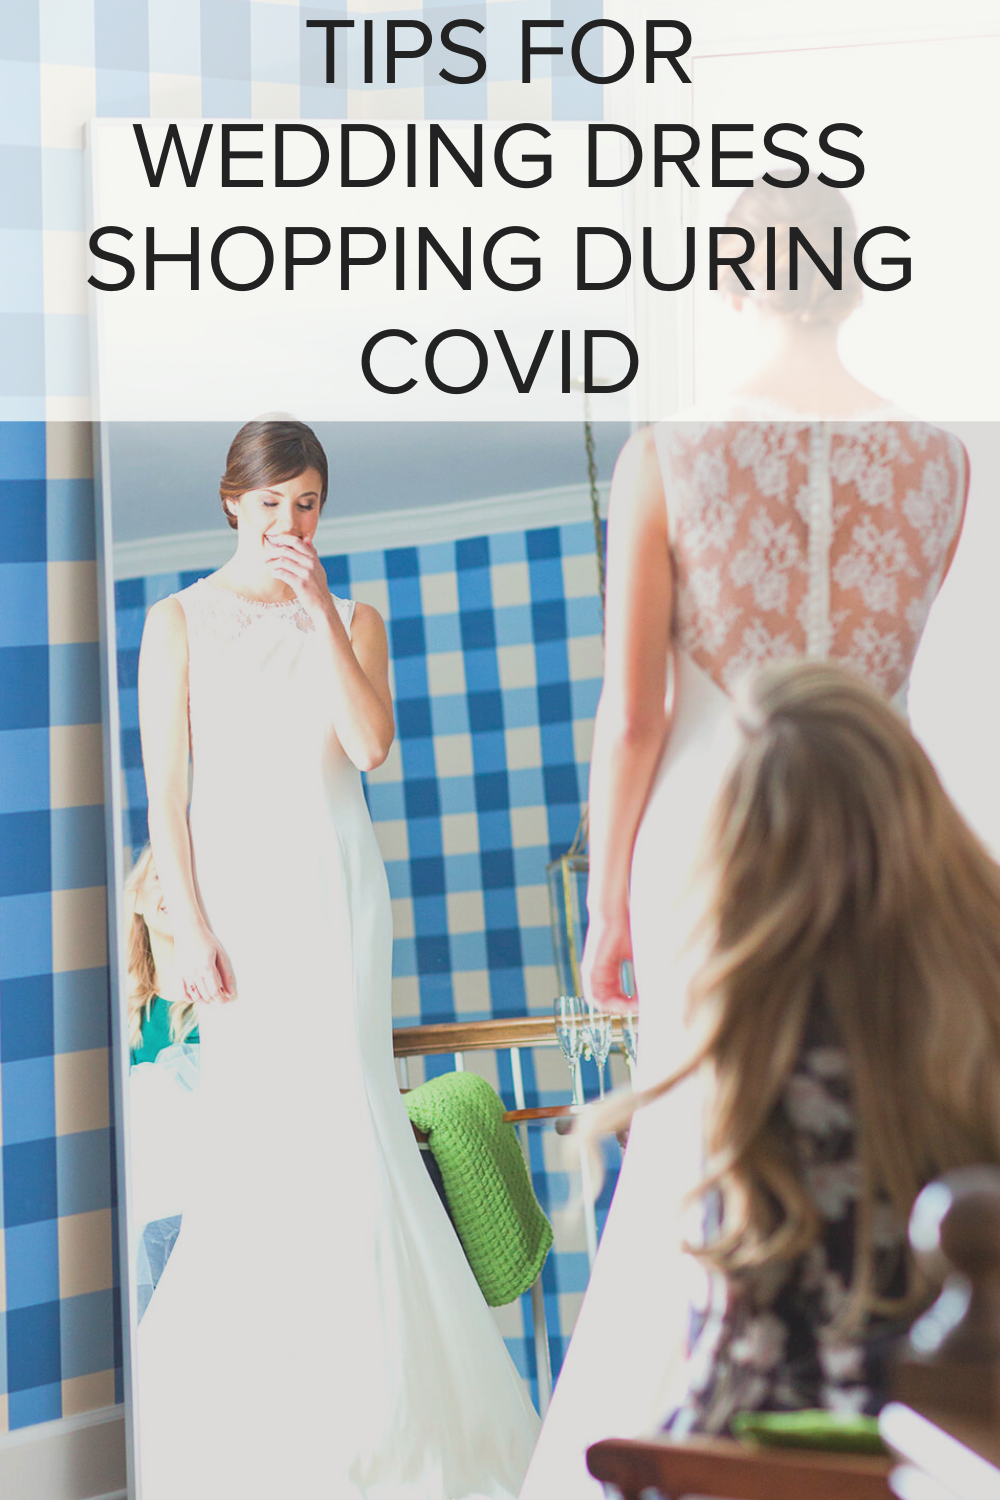 tips-for-wedding-dress-shopping-during-covid